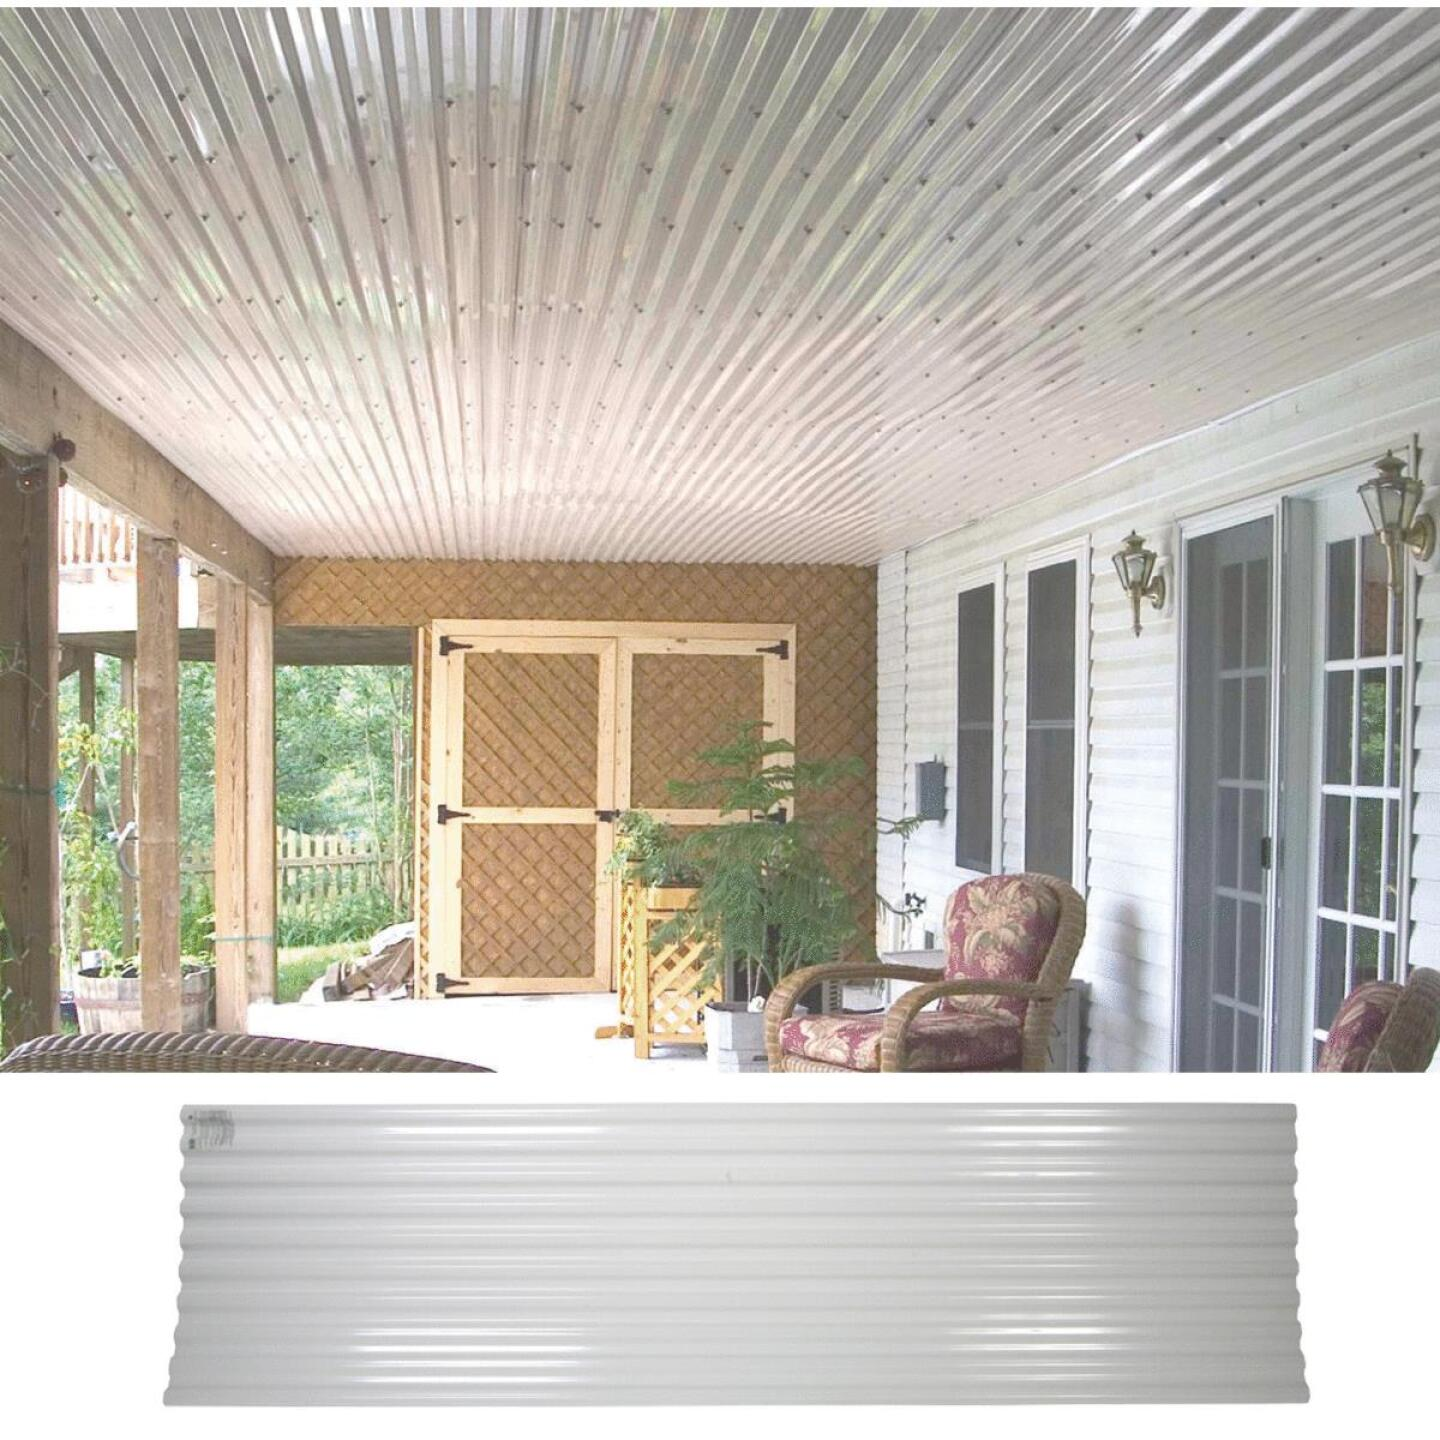 Tuftex UltraVinyl 26 In. x 10 Ft. Opaque White Square Wave Polycarb & Vinyl Corrugated Panels Image 1